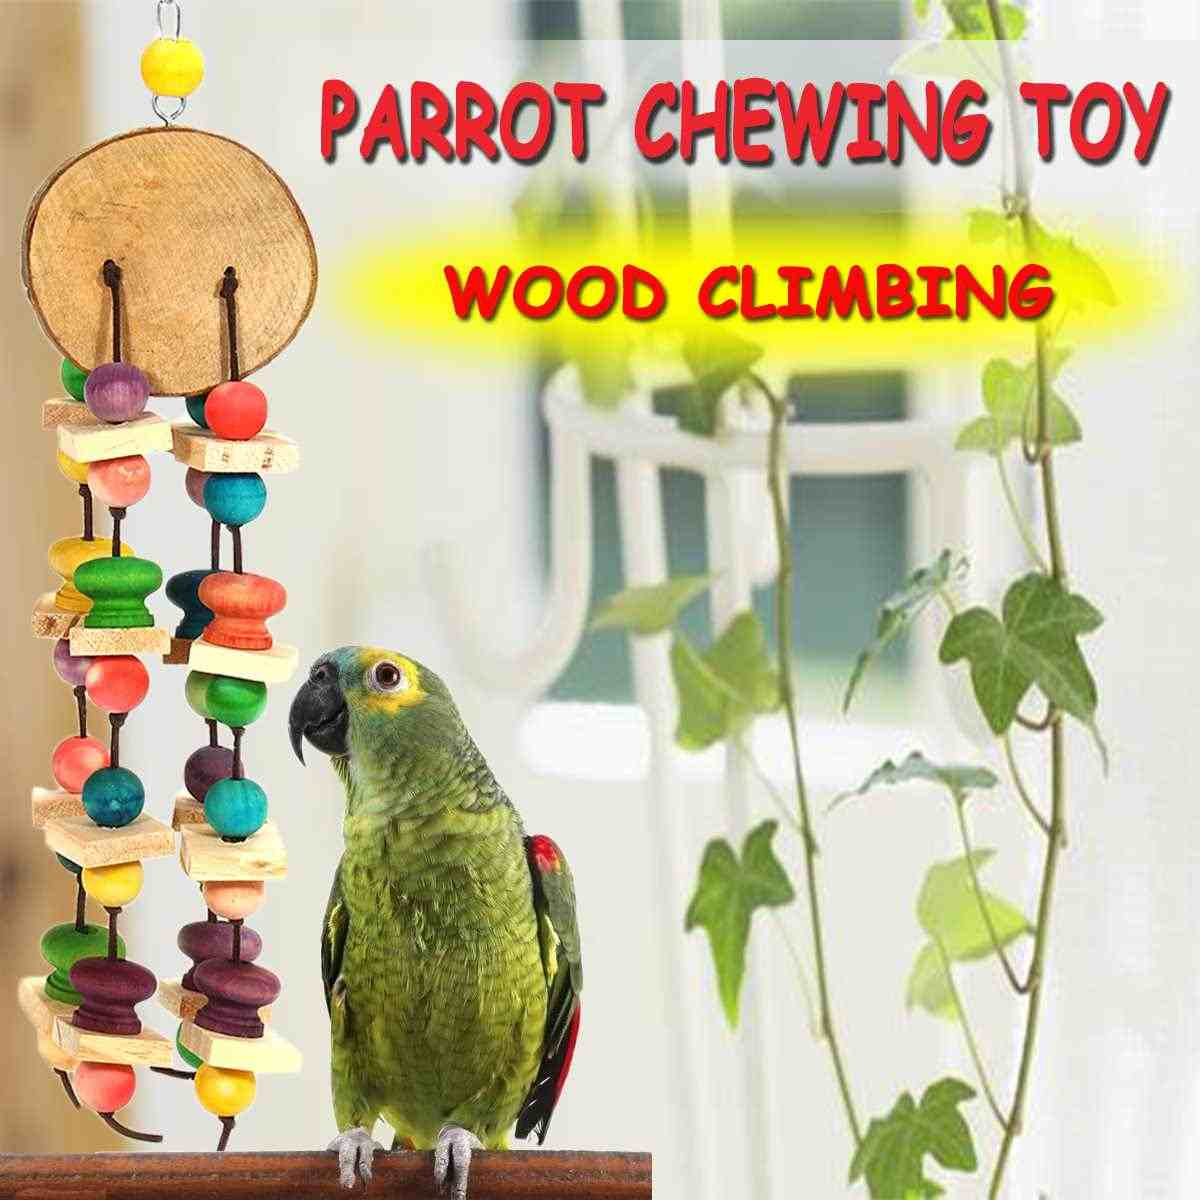 Pet Bird Cages Chewing Playing Toys Hanging Parrot Cockatiel Parakeet Colorful Swing Wooden Blocks Pet Bird Bites Toy